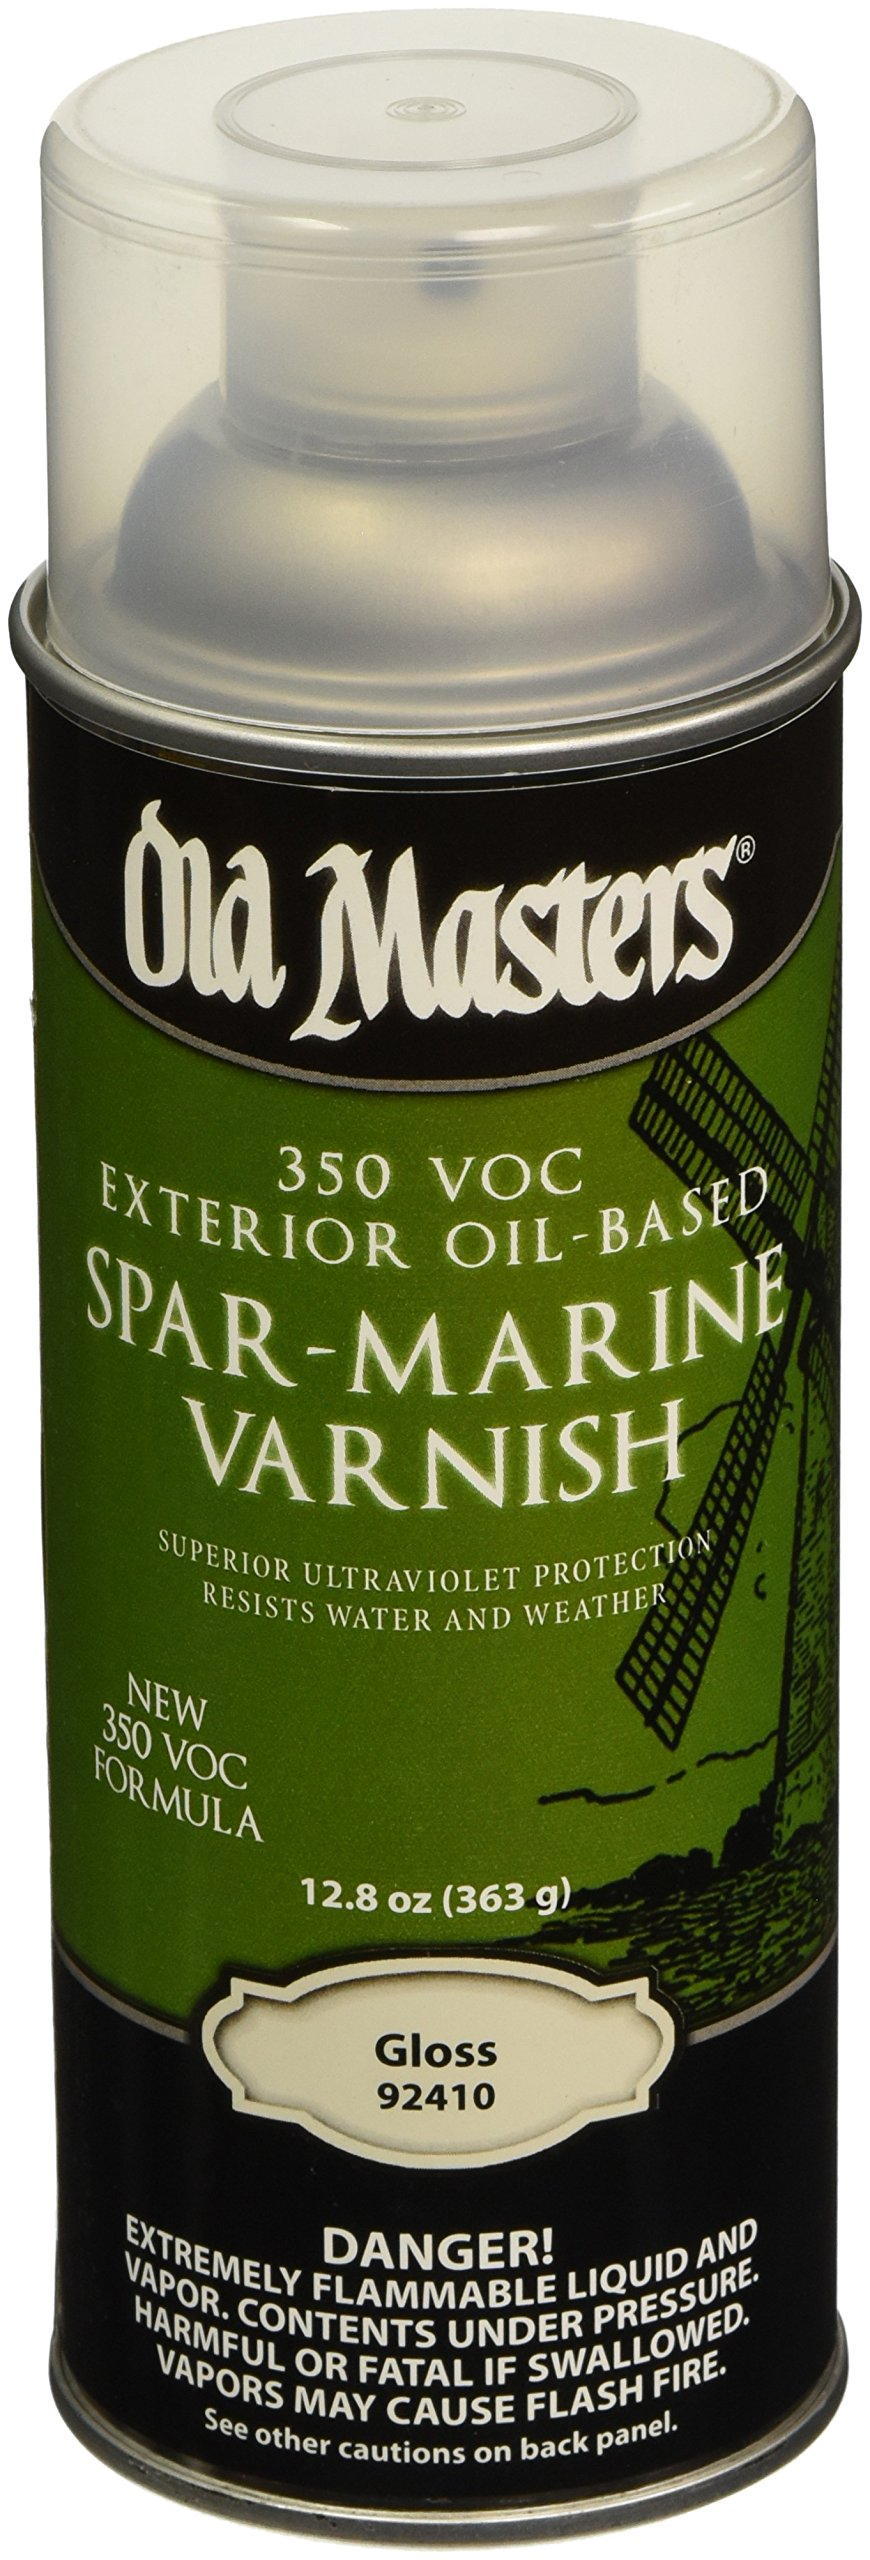 OLD MASTERS 92410 Spar Varnish, 12.8 oz, Gloss